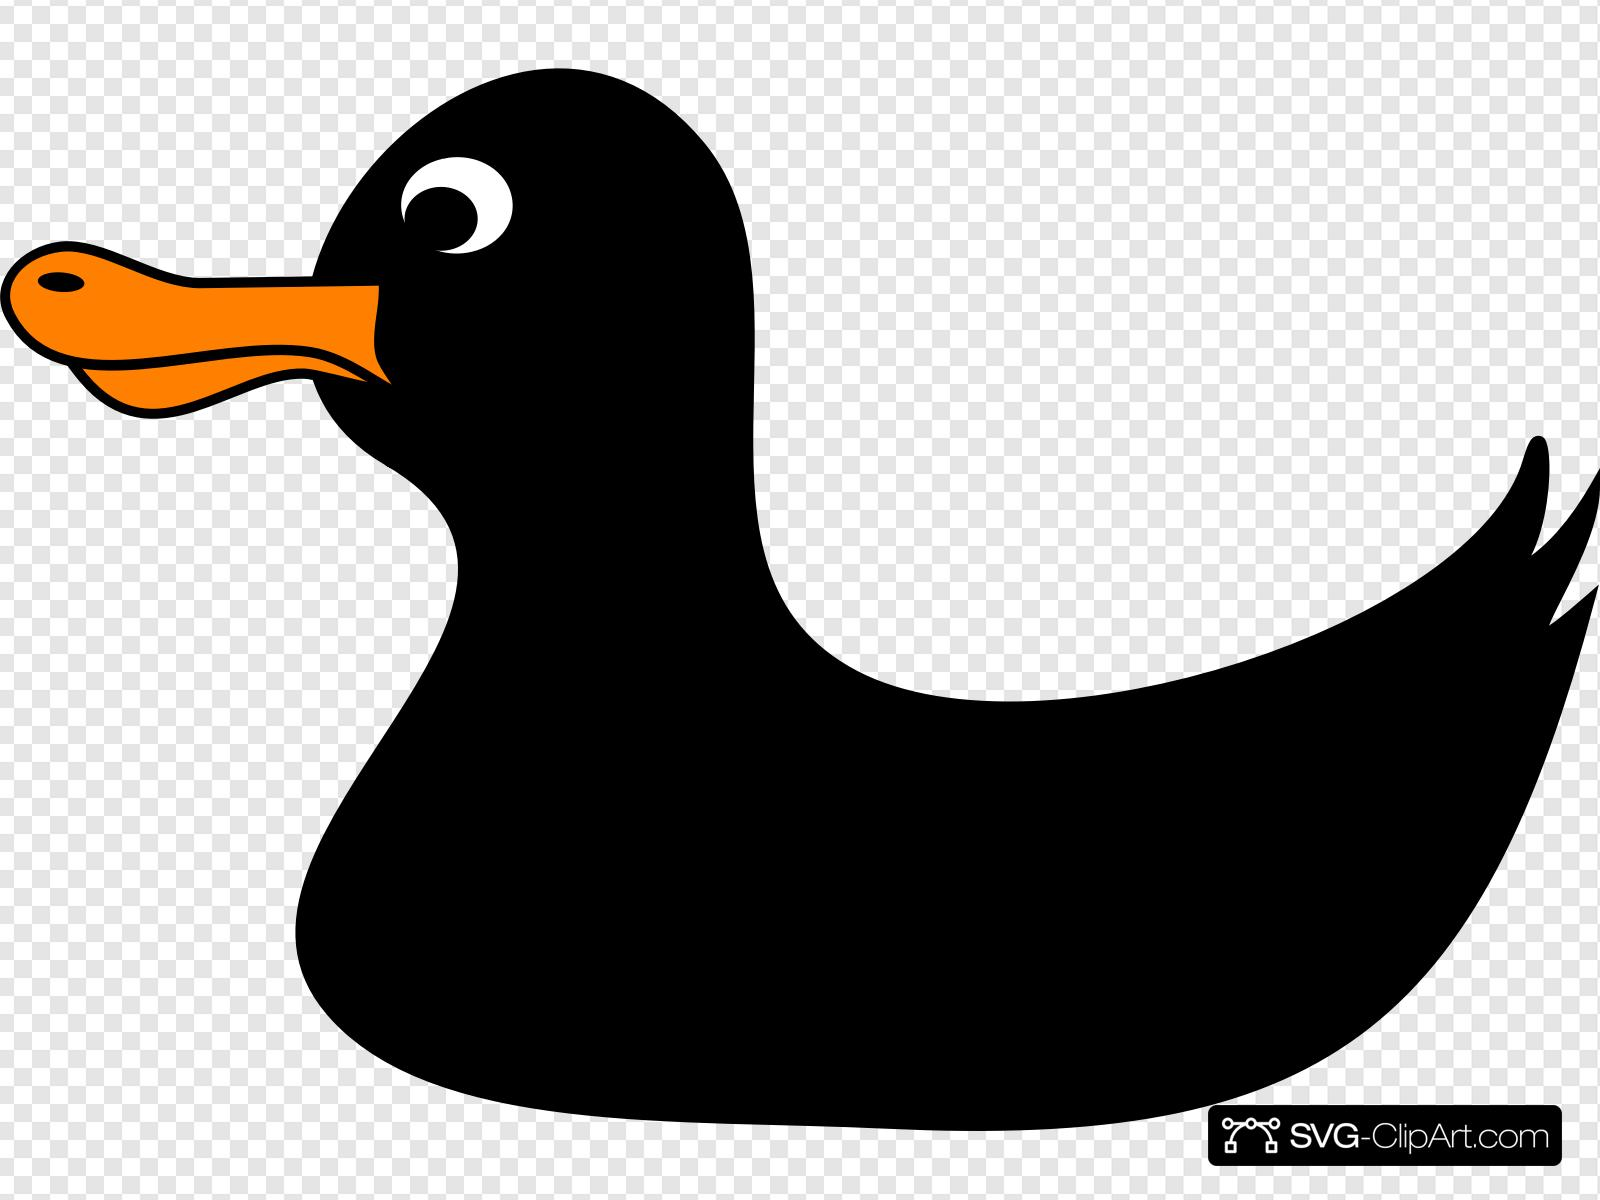 Thanksgiving duck clipart picture black and white stock Black Duck Clip art, Icon and SVG - SVG Clipart picture black and white stock